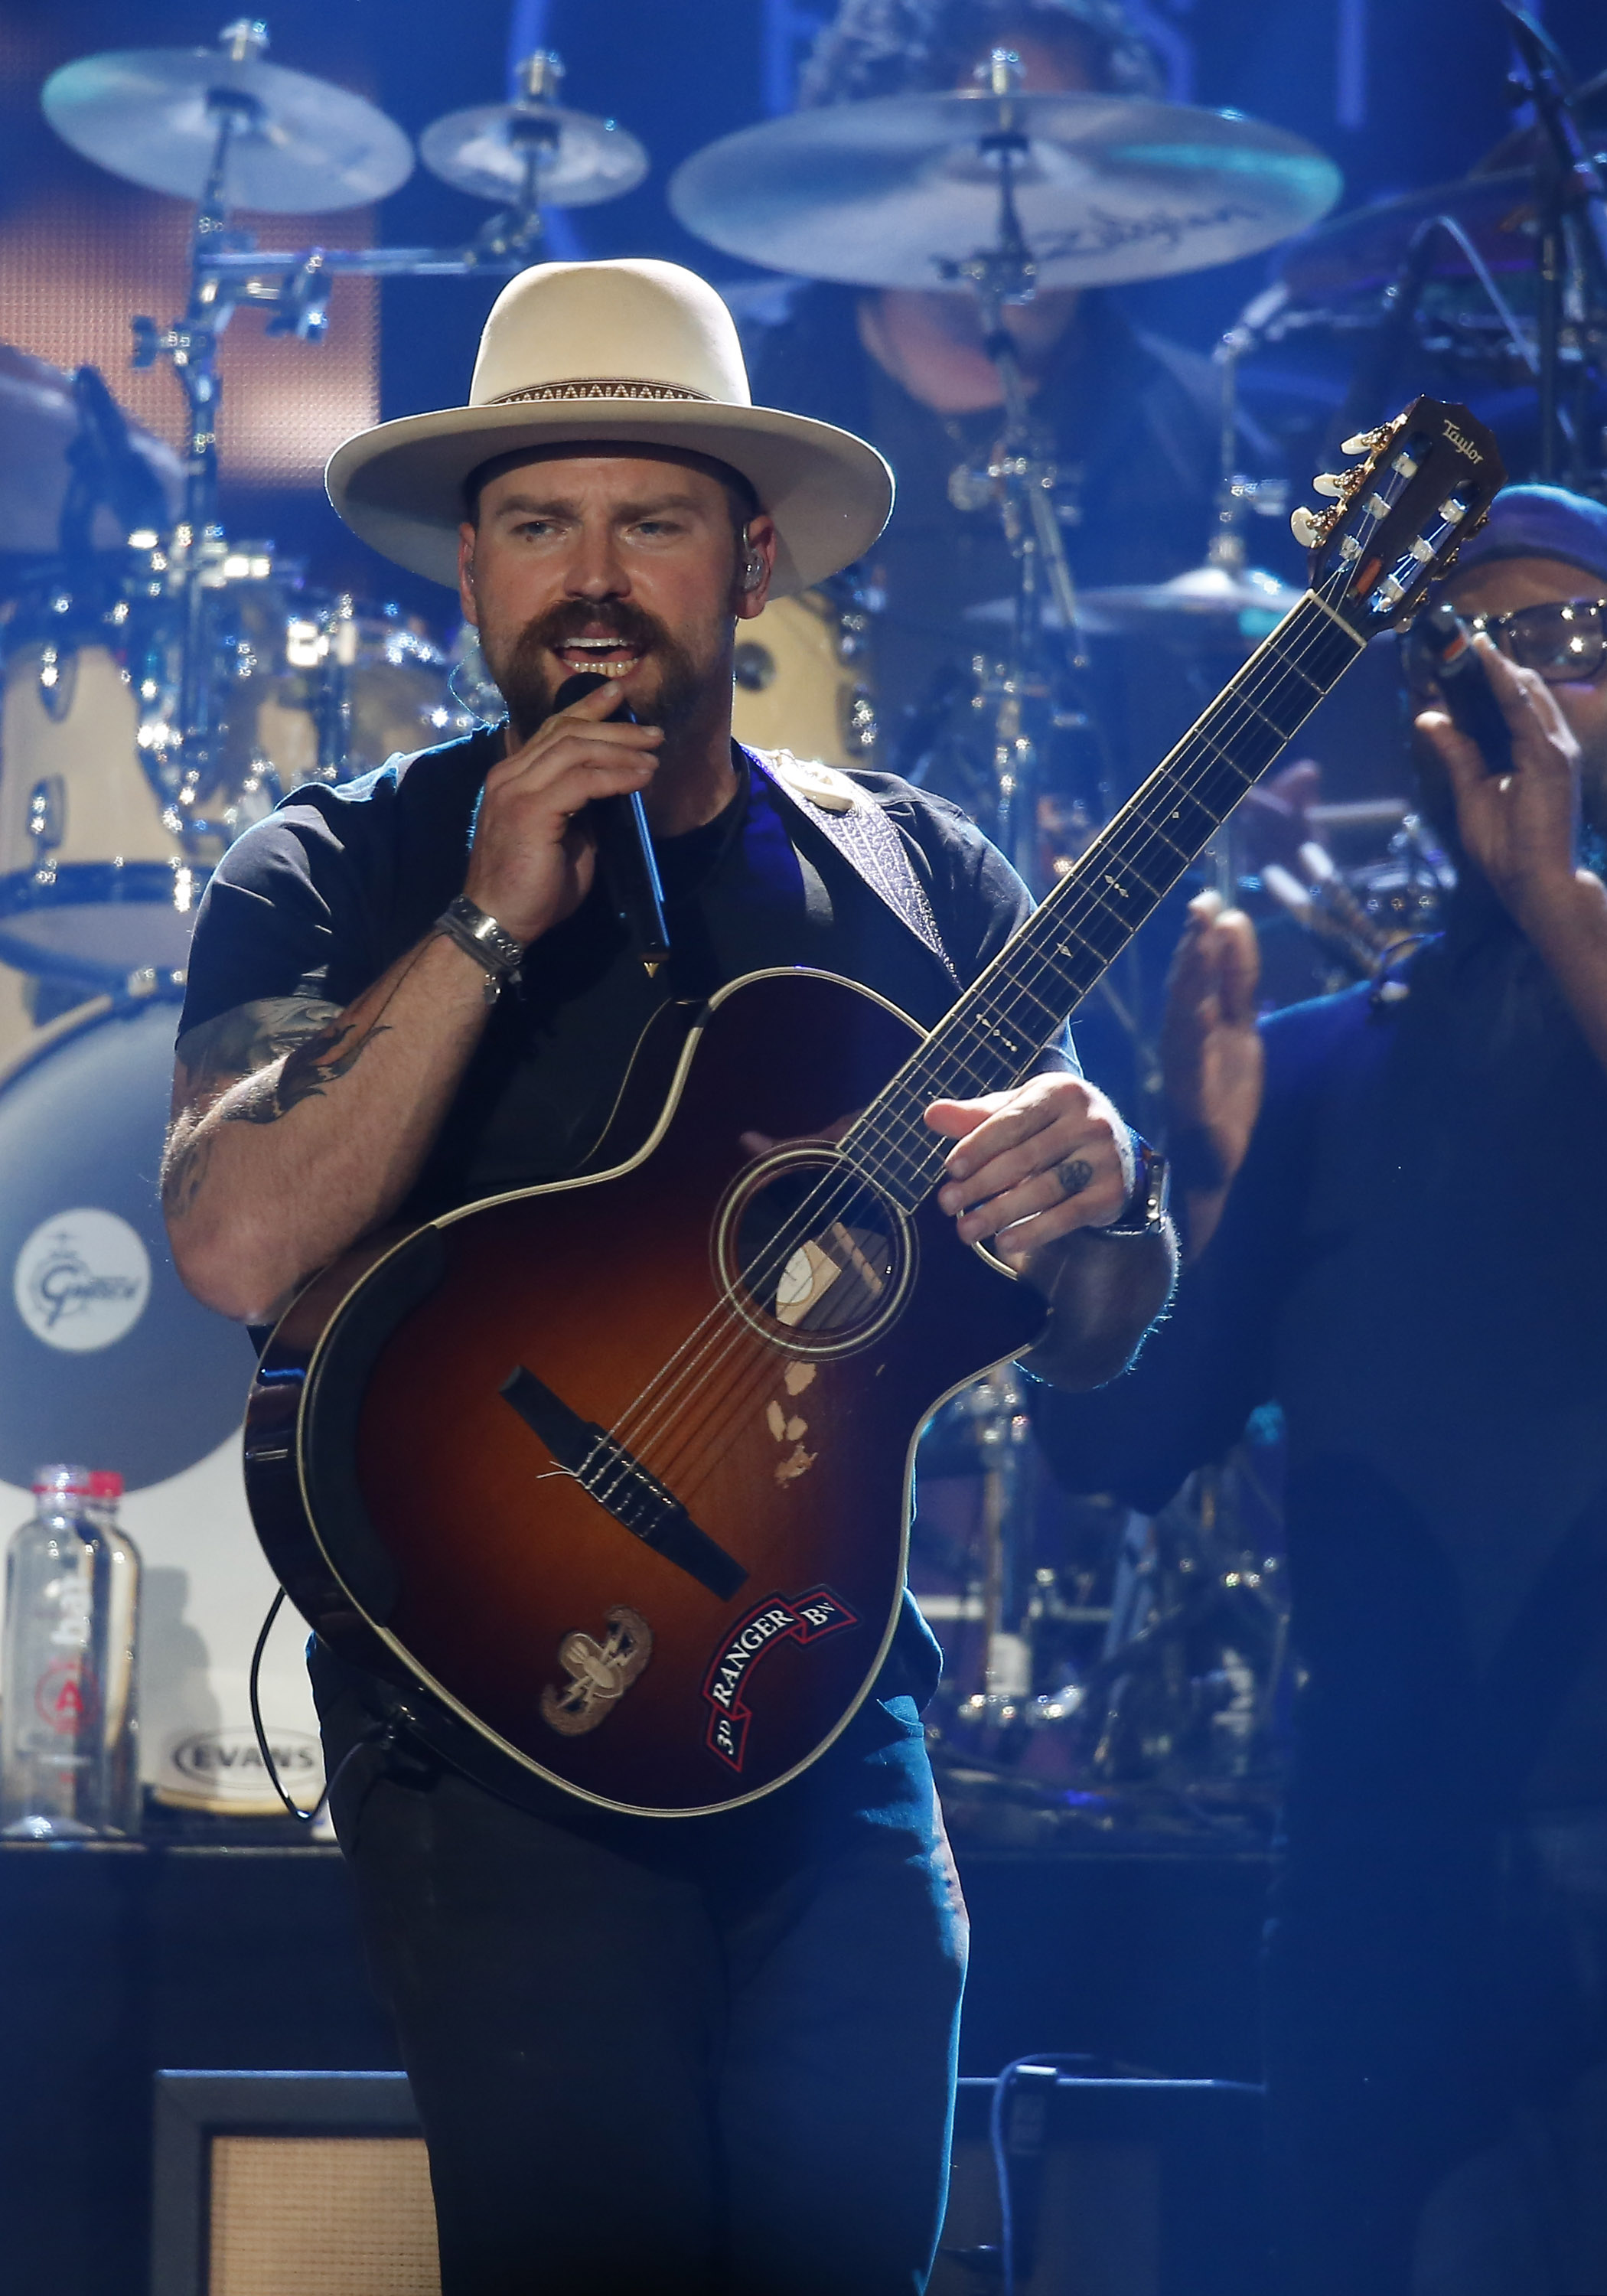 Singer Zac Brown Makes Hospital Visit To Pennsylvania Teen